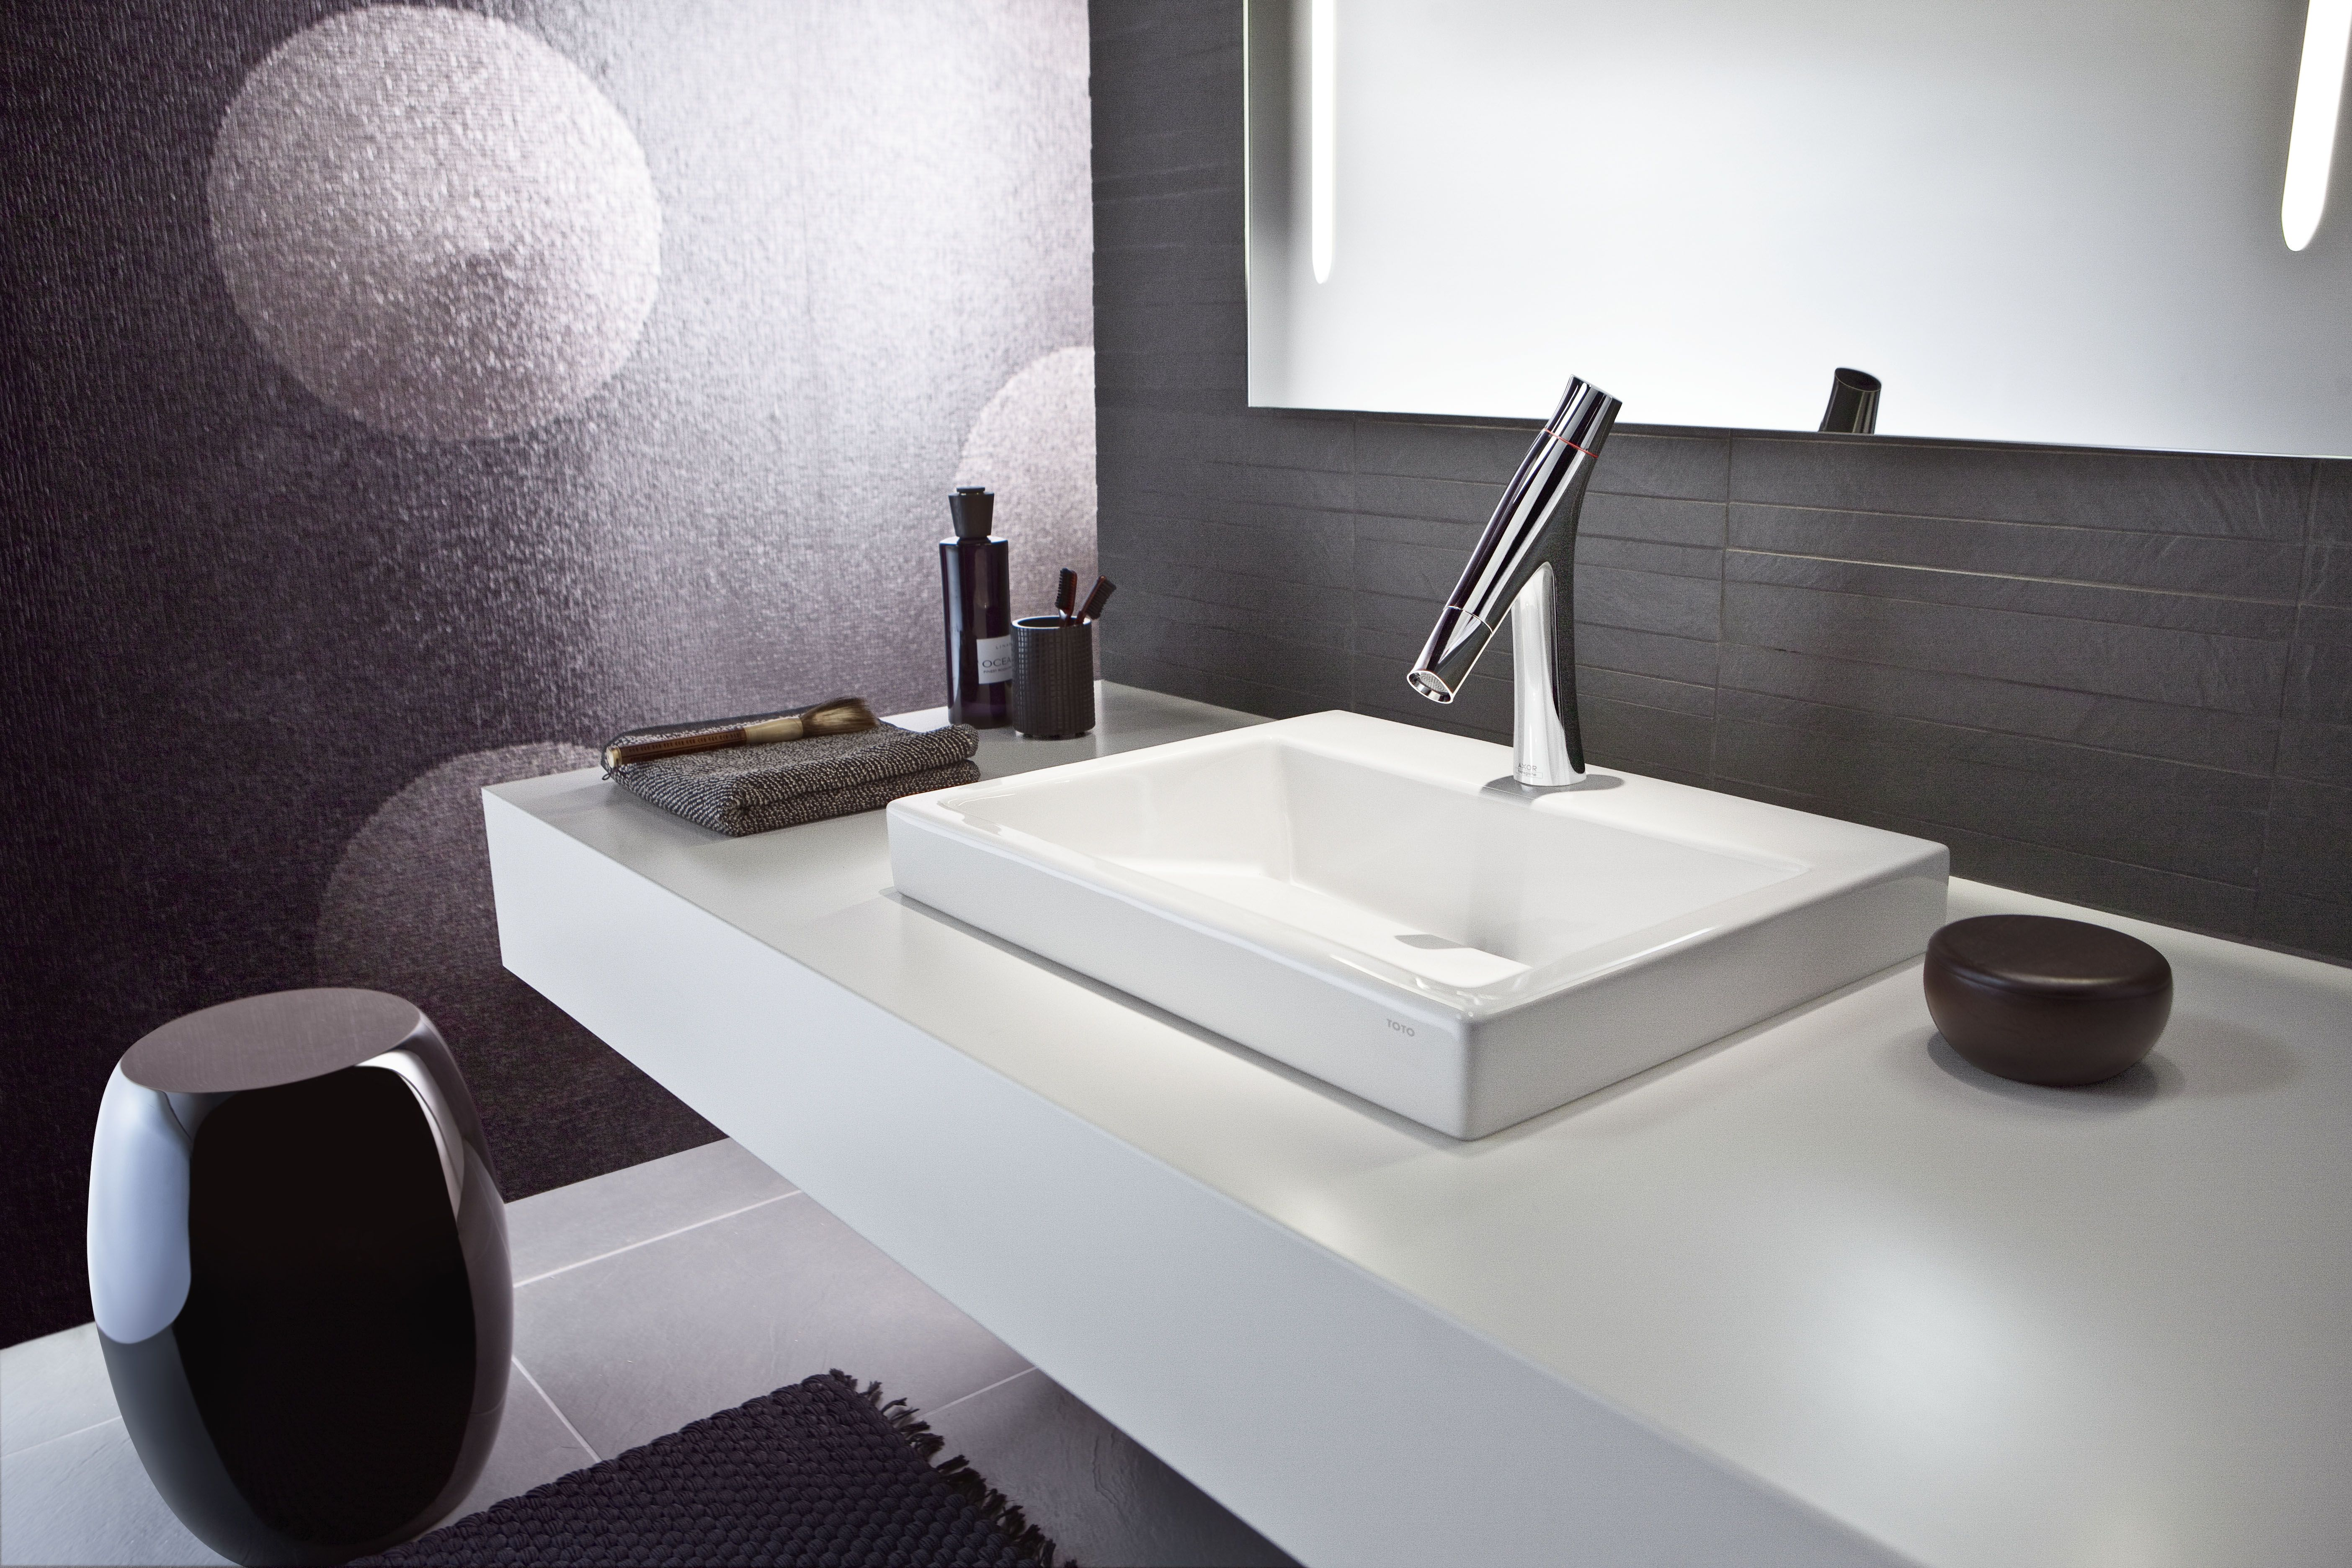 Axor Strack Organic 2Handle Singlehole Faucet Hansgrohe Captivating Bathroom Design Centre Decorating Inspiration